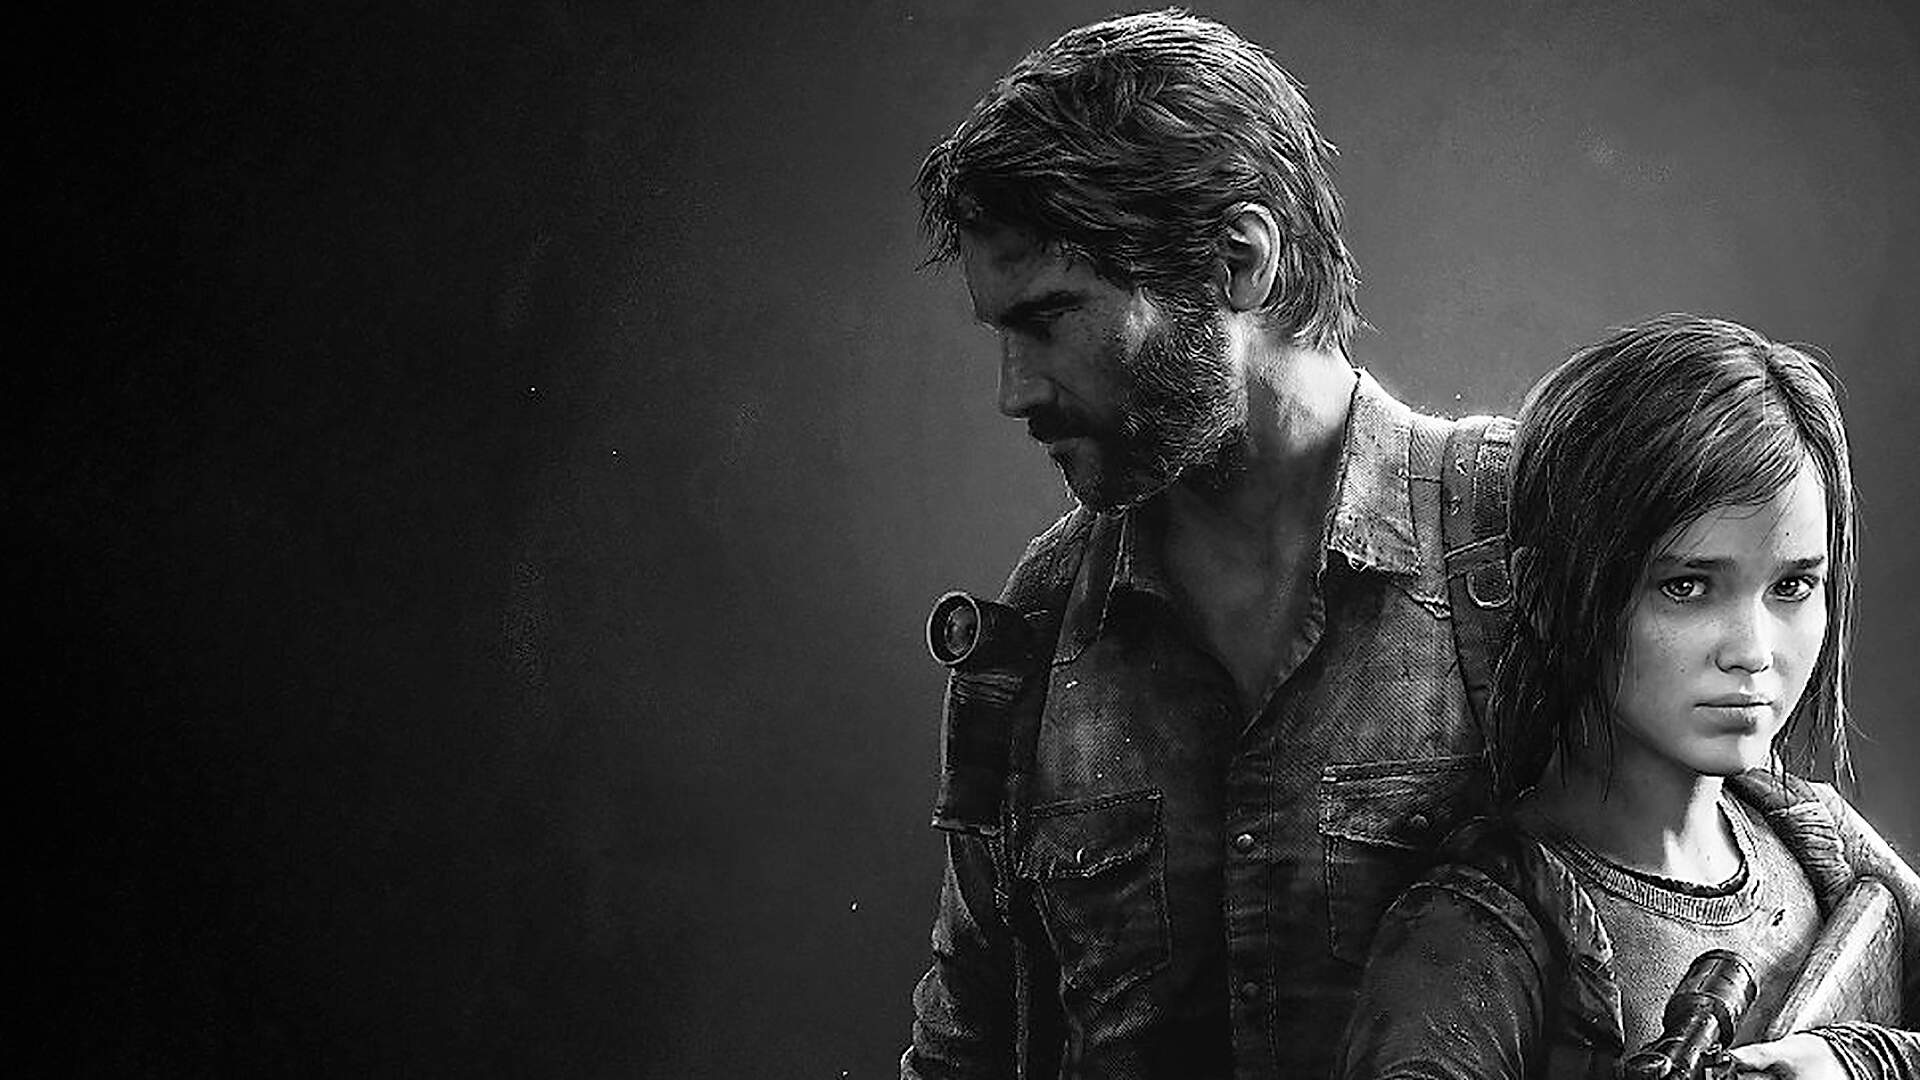 The Last of Us HBO TV Show In Development With Neil Druckmann and Creator of Chernobyl